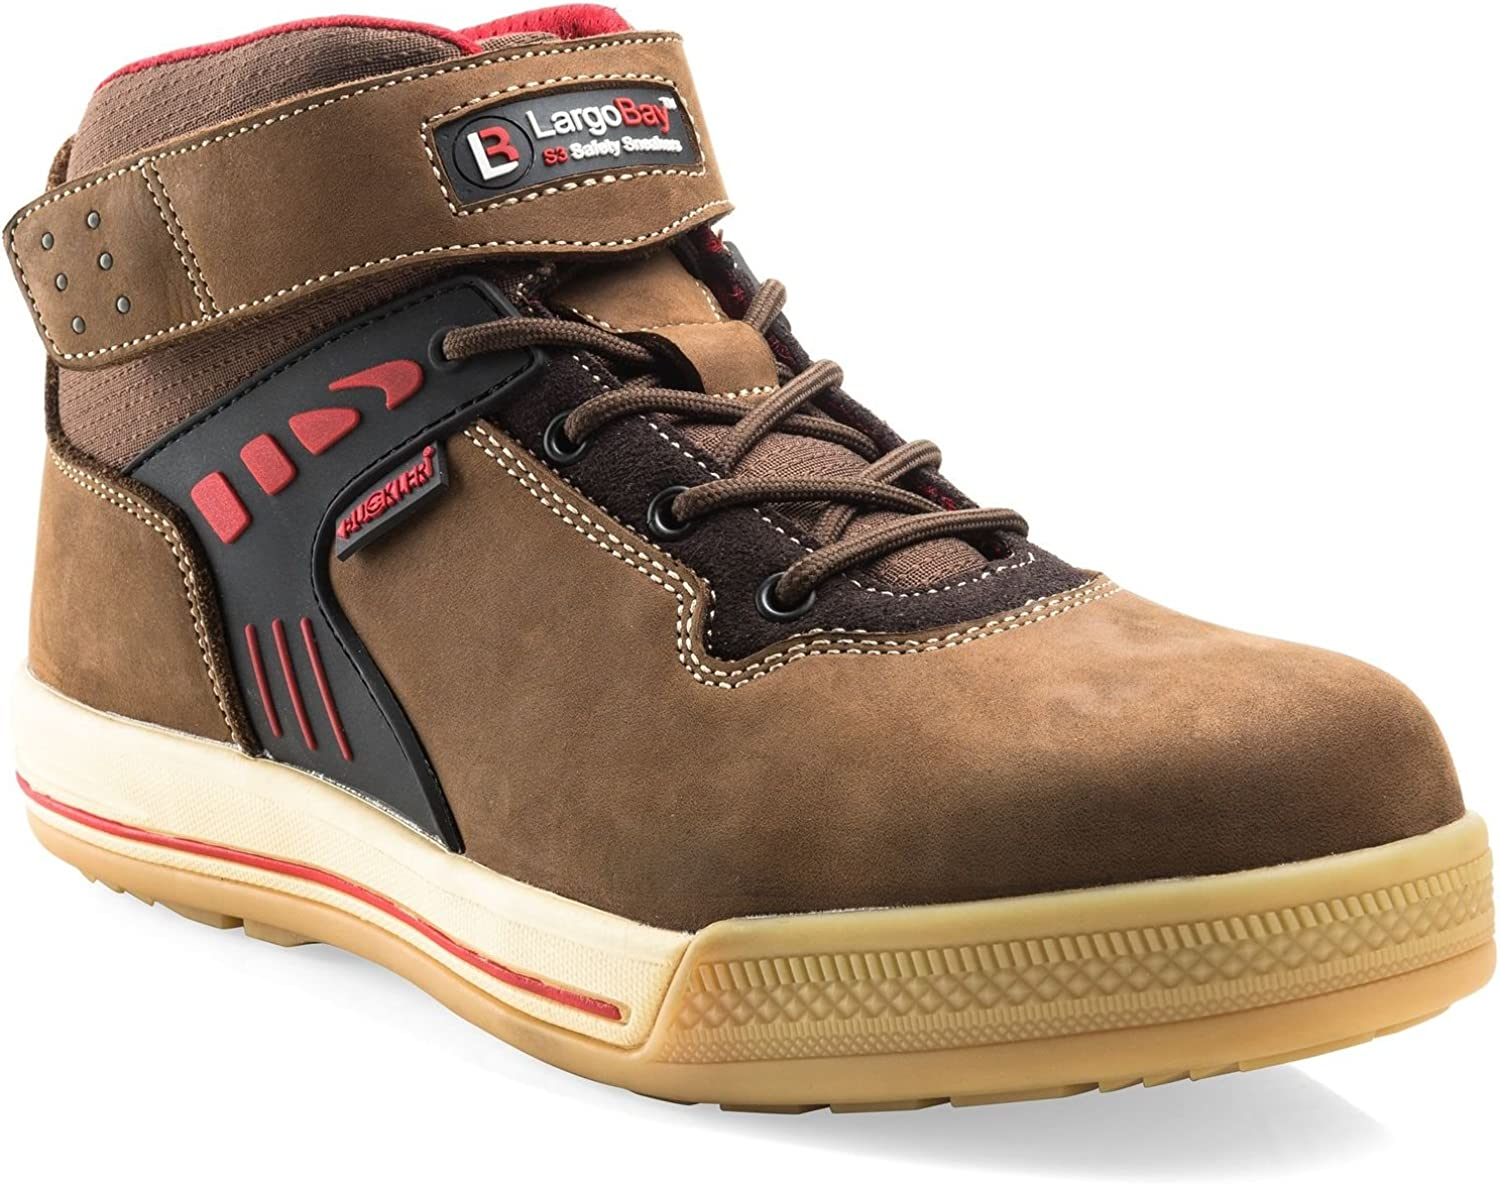 Buckler Duke BR Largo Bay Safety Lace Sneaker Boots